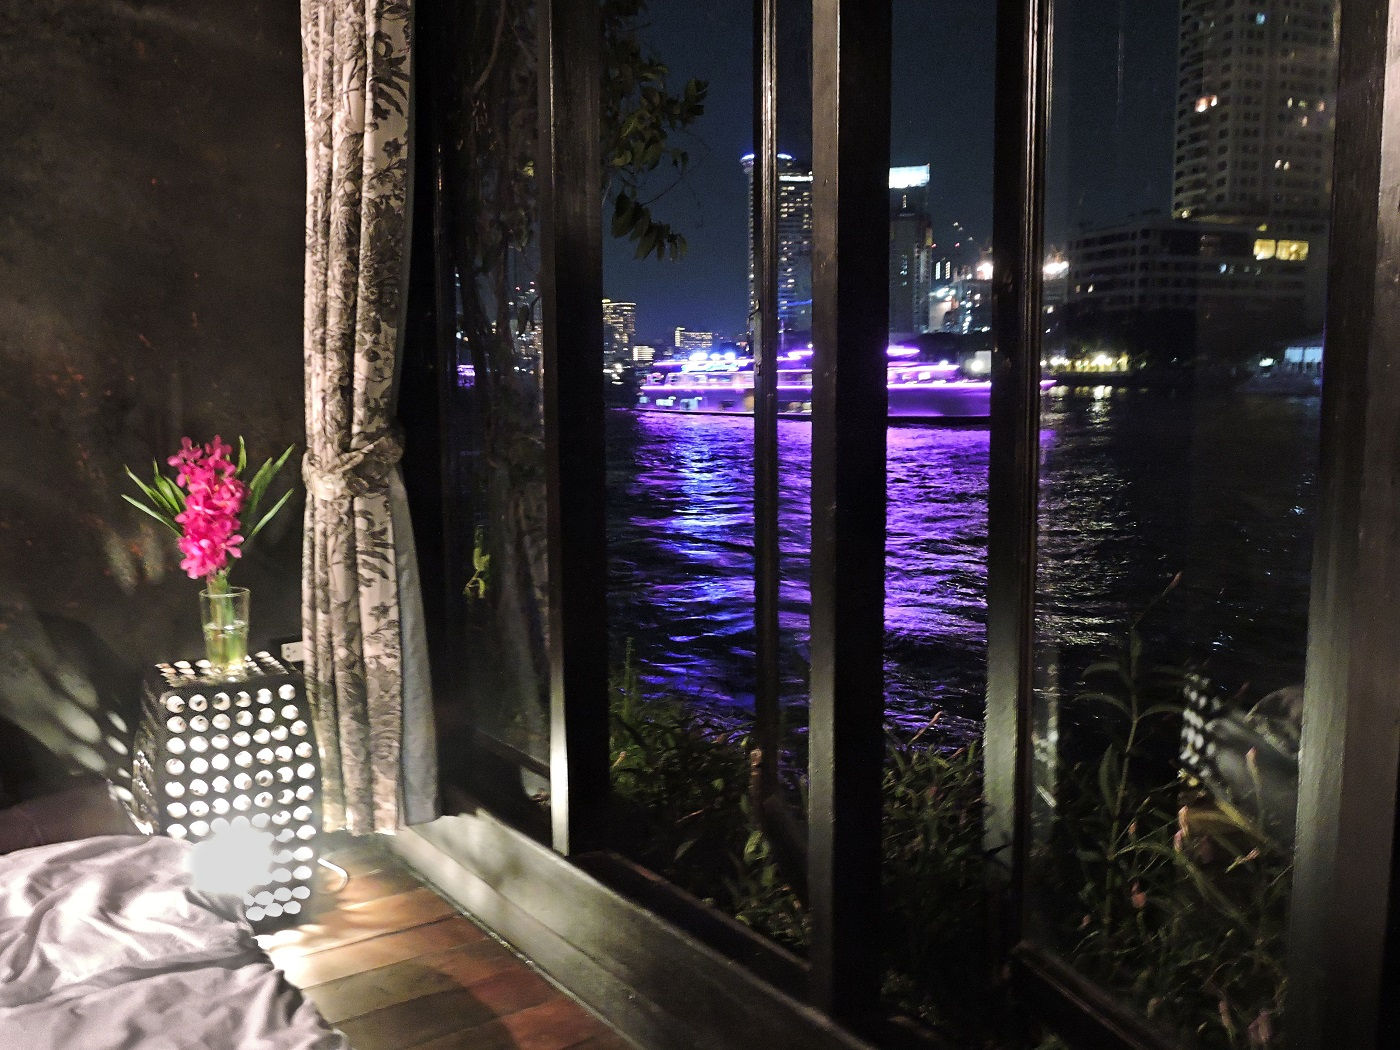 night time view from hotel room of river with lights